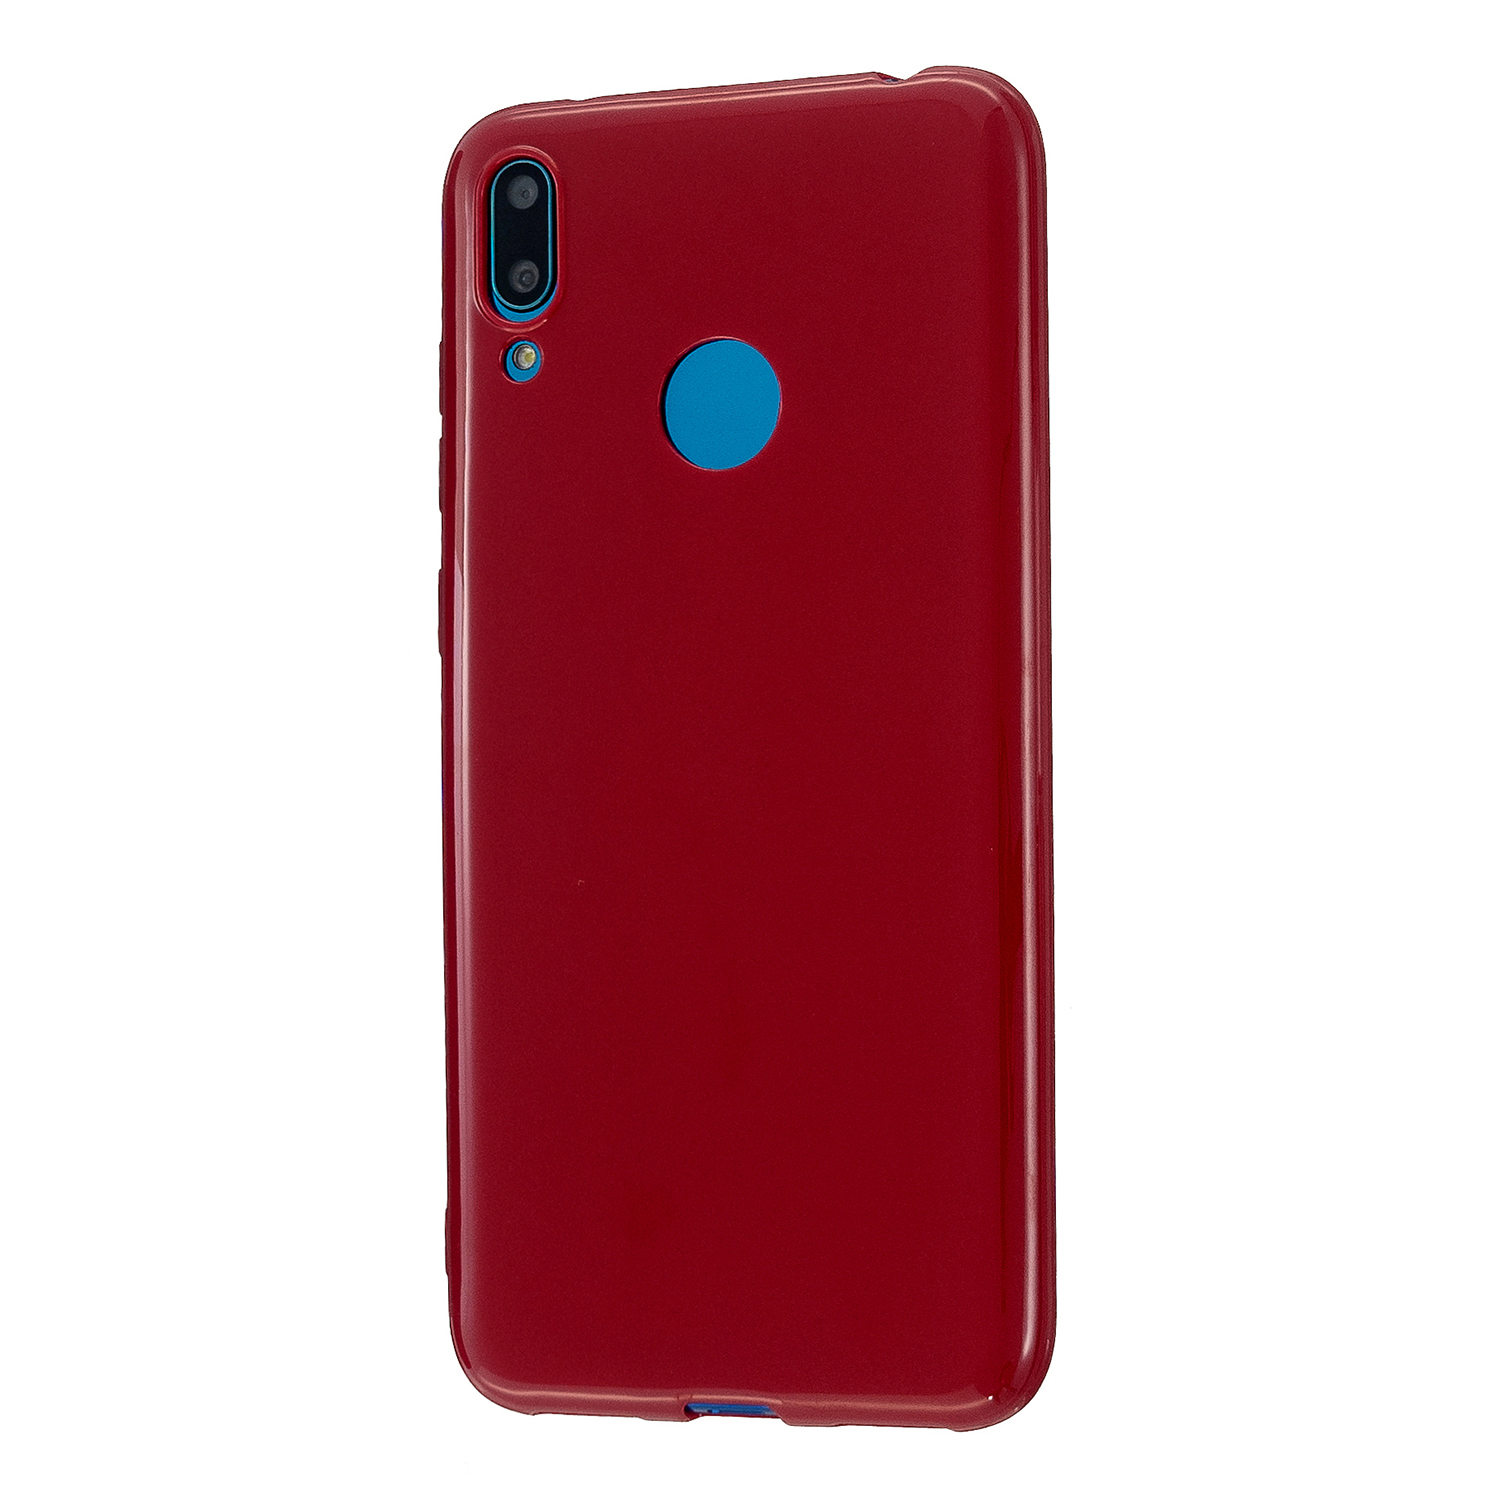 For HUAWEI Y6/Y7 Prime 2019 Glossy TPU Phone Case Mobile Phone Soft Cover Full Body Protection Rose red